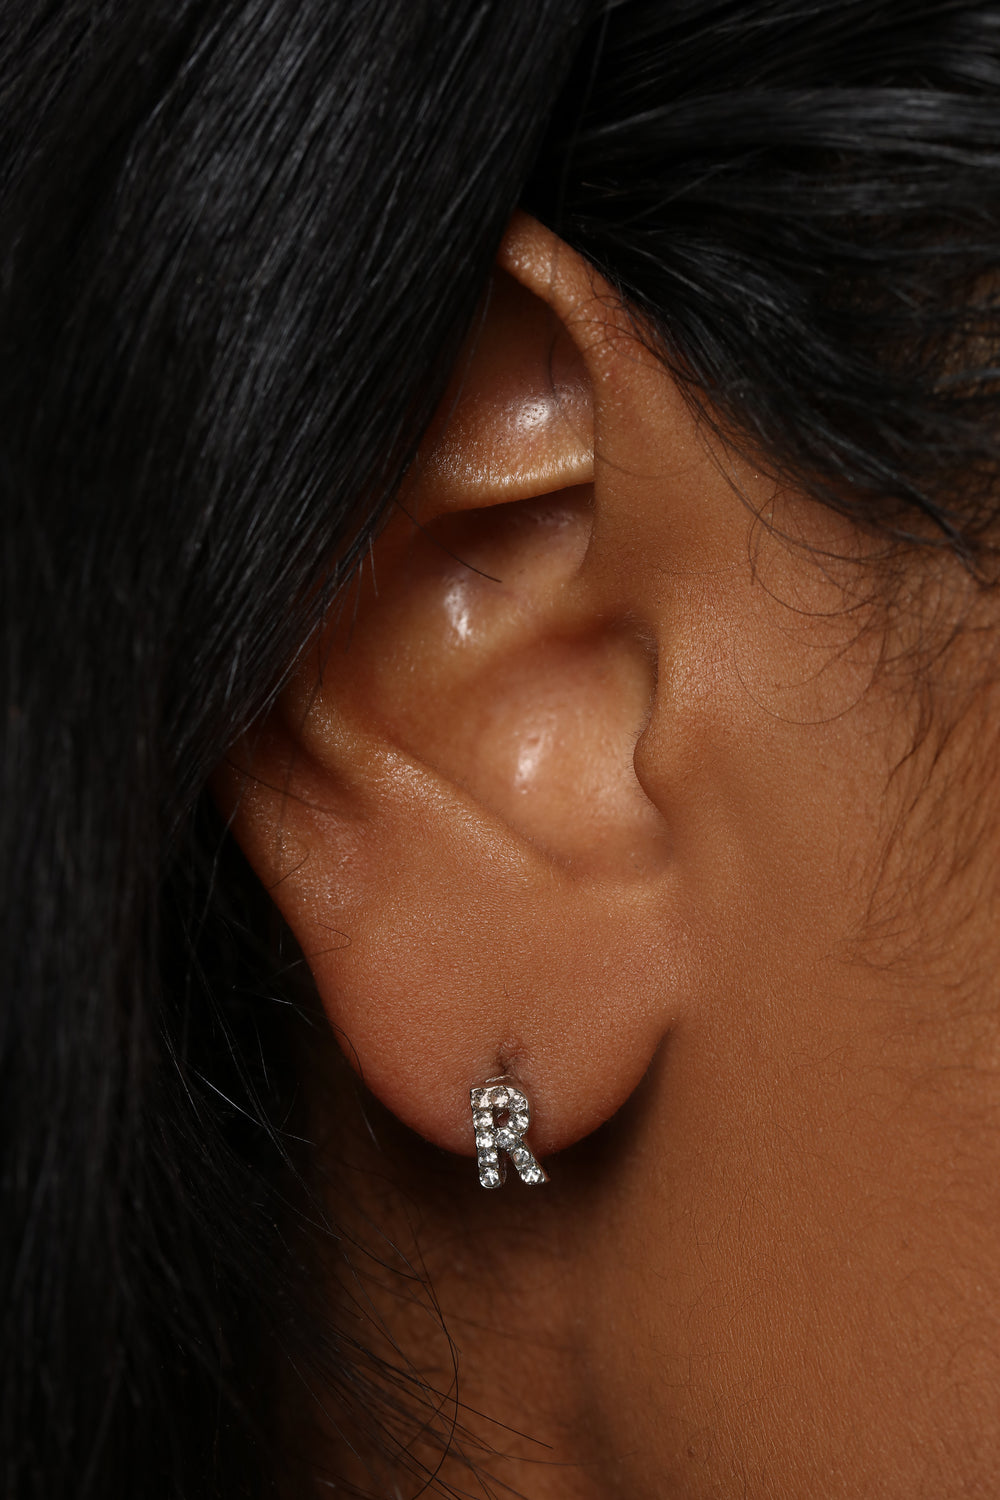 Uniquely Me 'R' Earrings - Silver